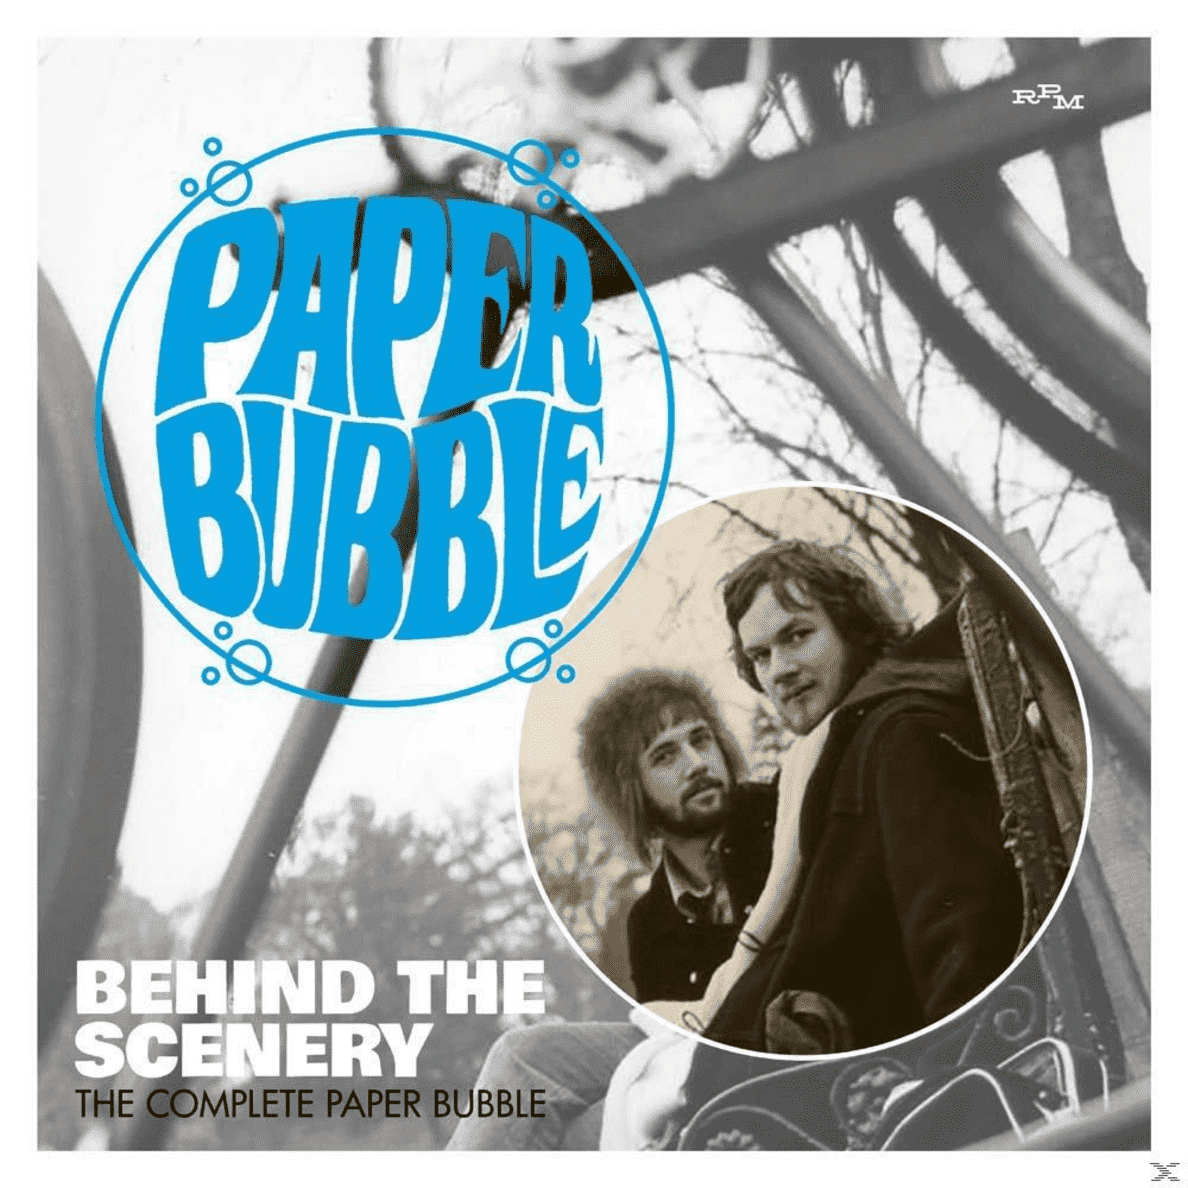 Paper Bubble - Behind The Scenery - Complete Paper Bubble (2cd) - (CD)